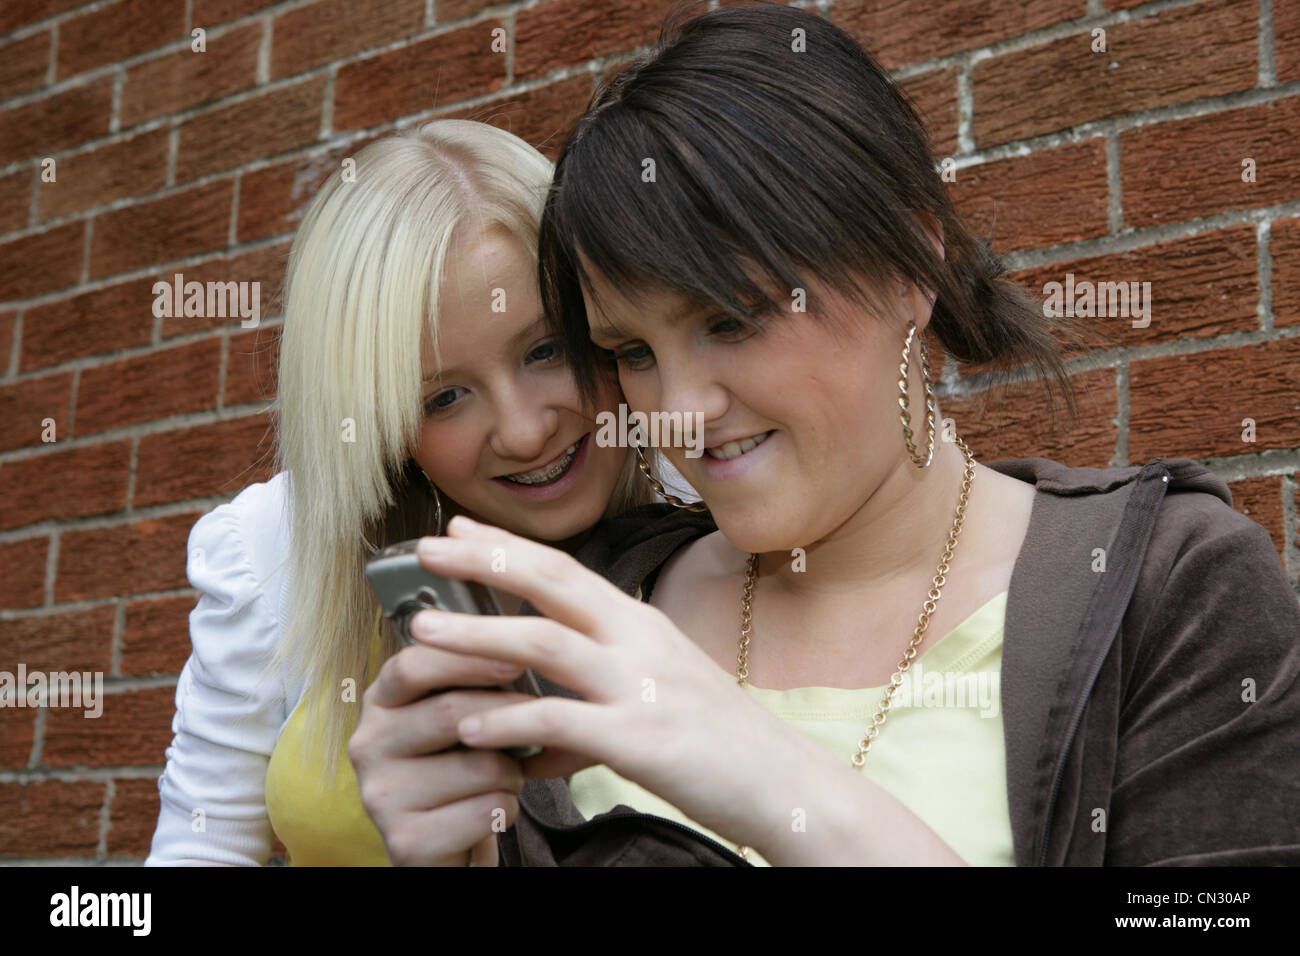 Deux jeunes femmes looking at mobile phone Photo Stock